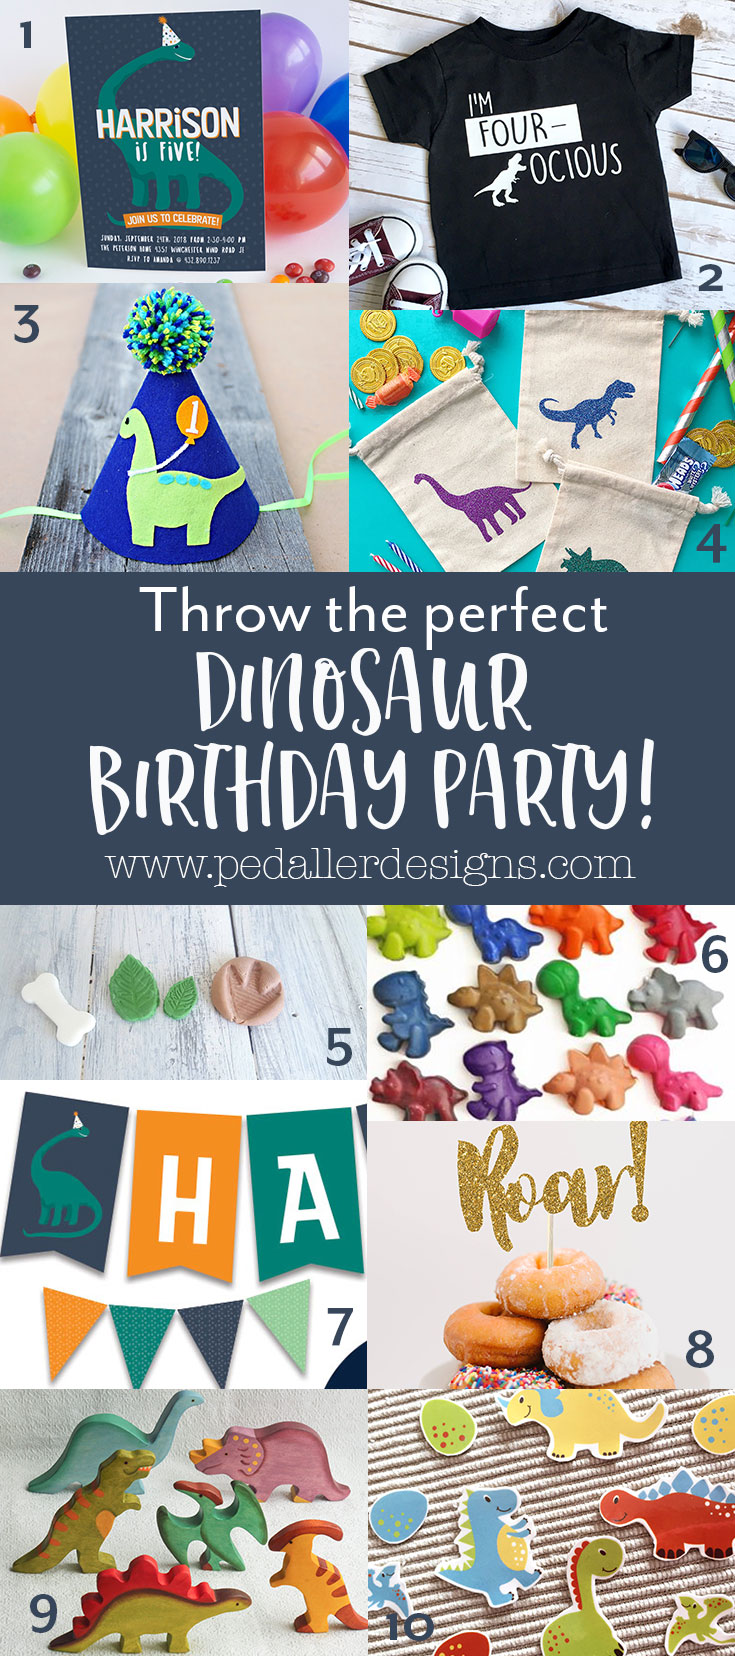 Everything you need for your dinosaur loving boy is here to make his birthday party the most memorable one yet!